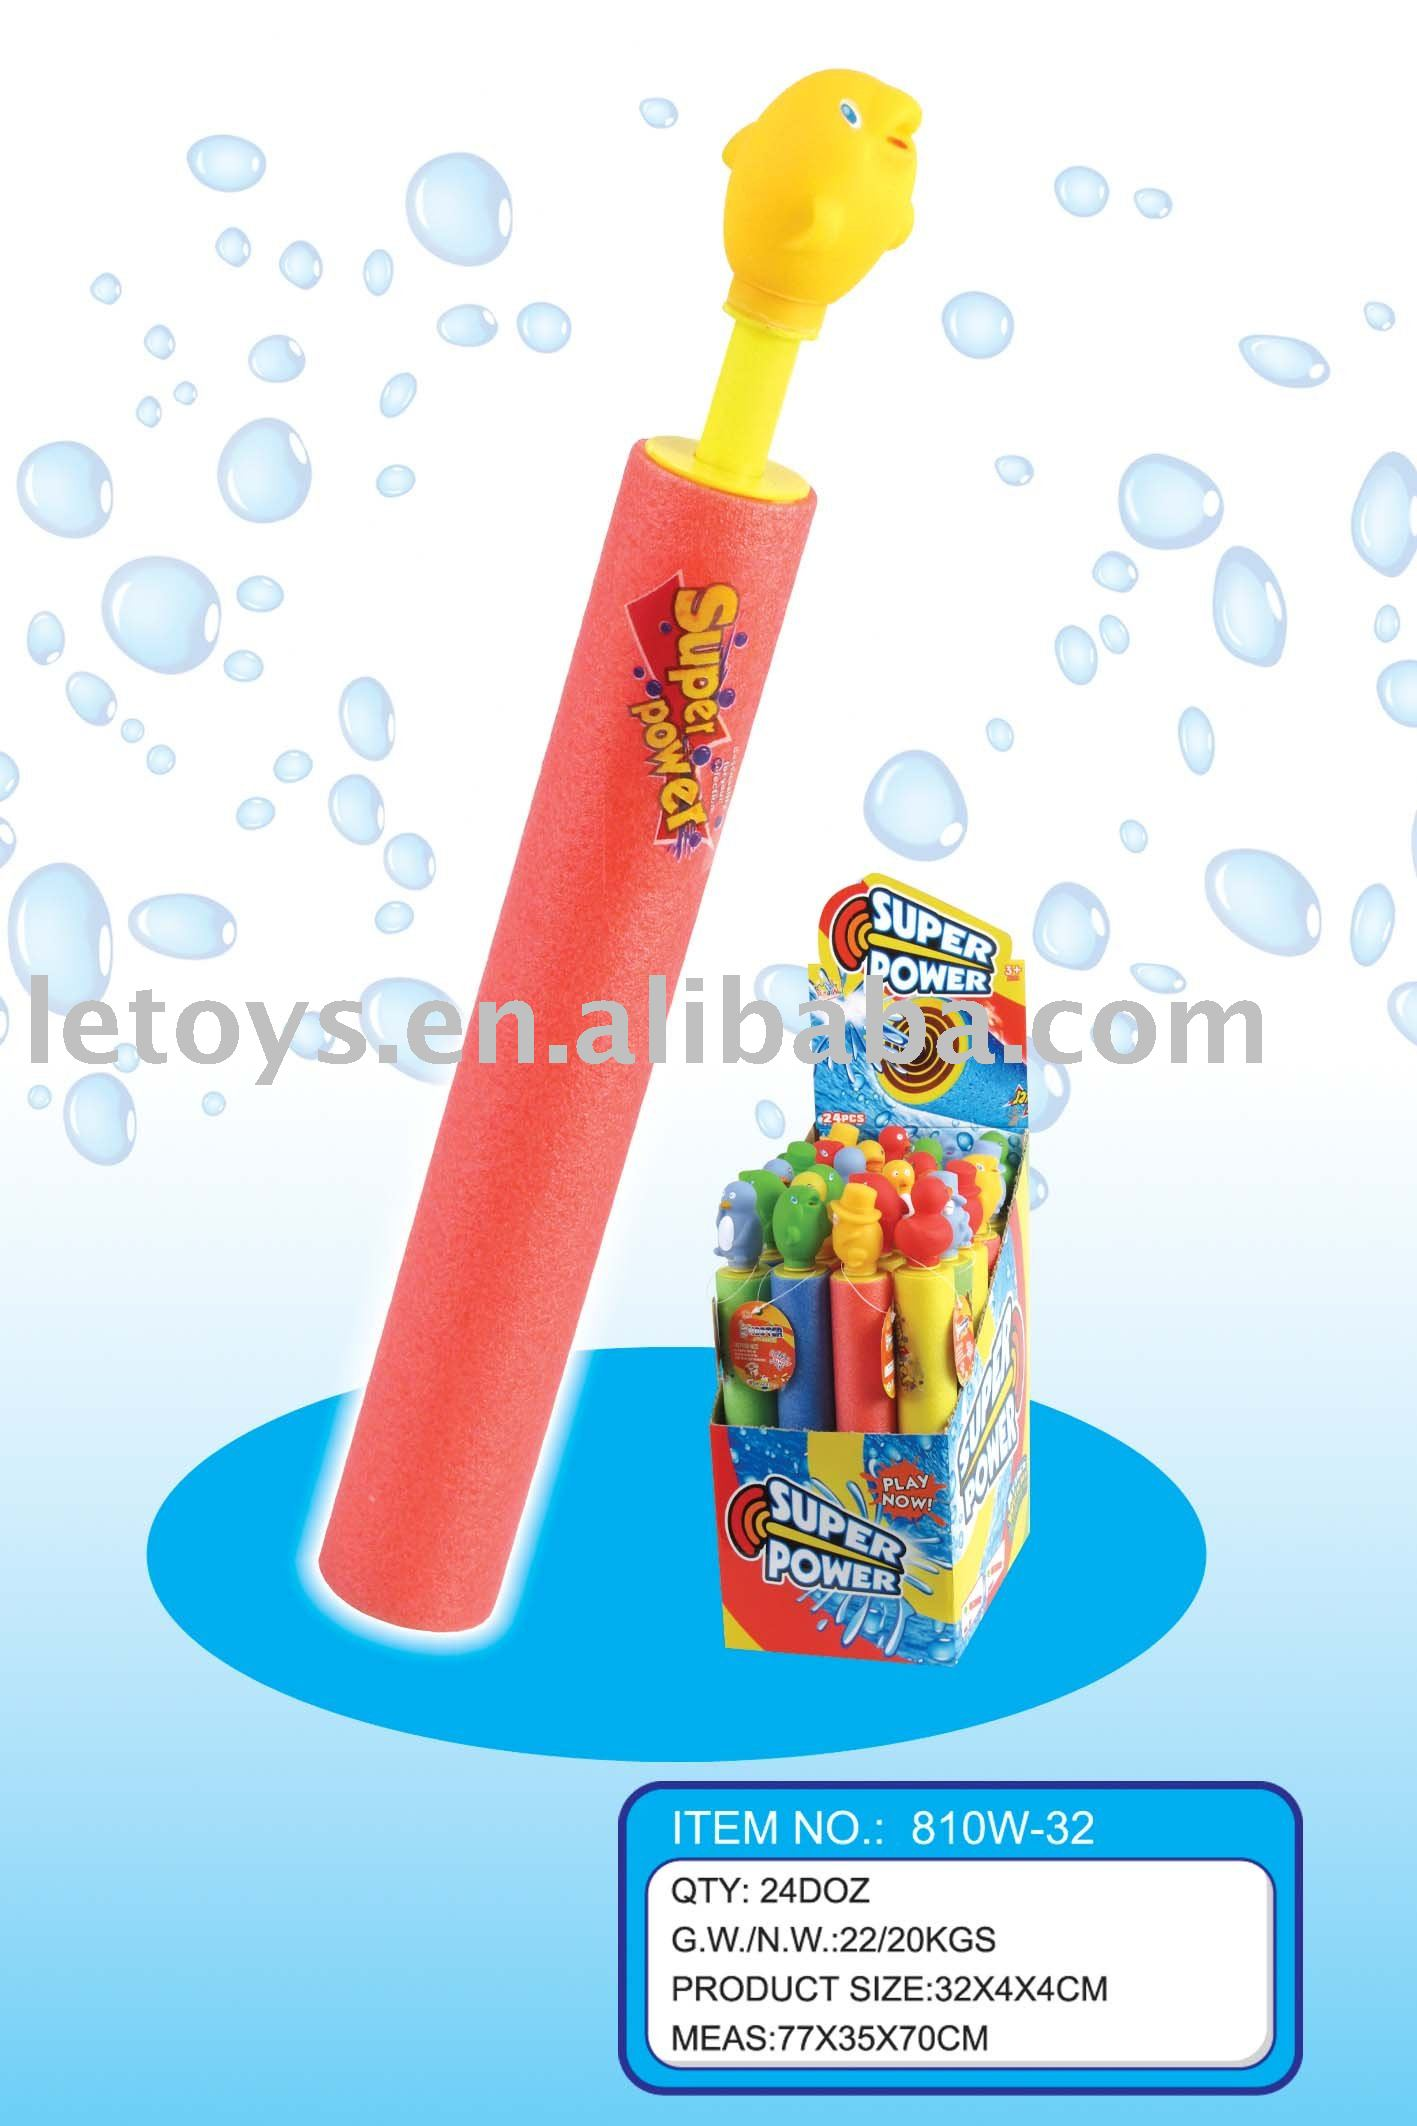 sponge high power water gun